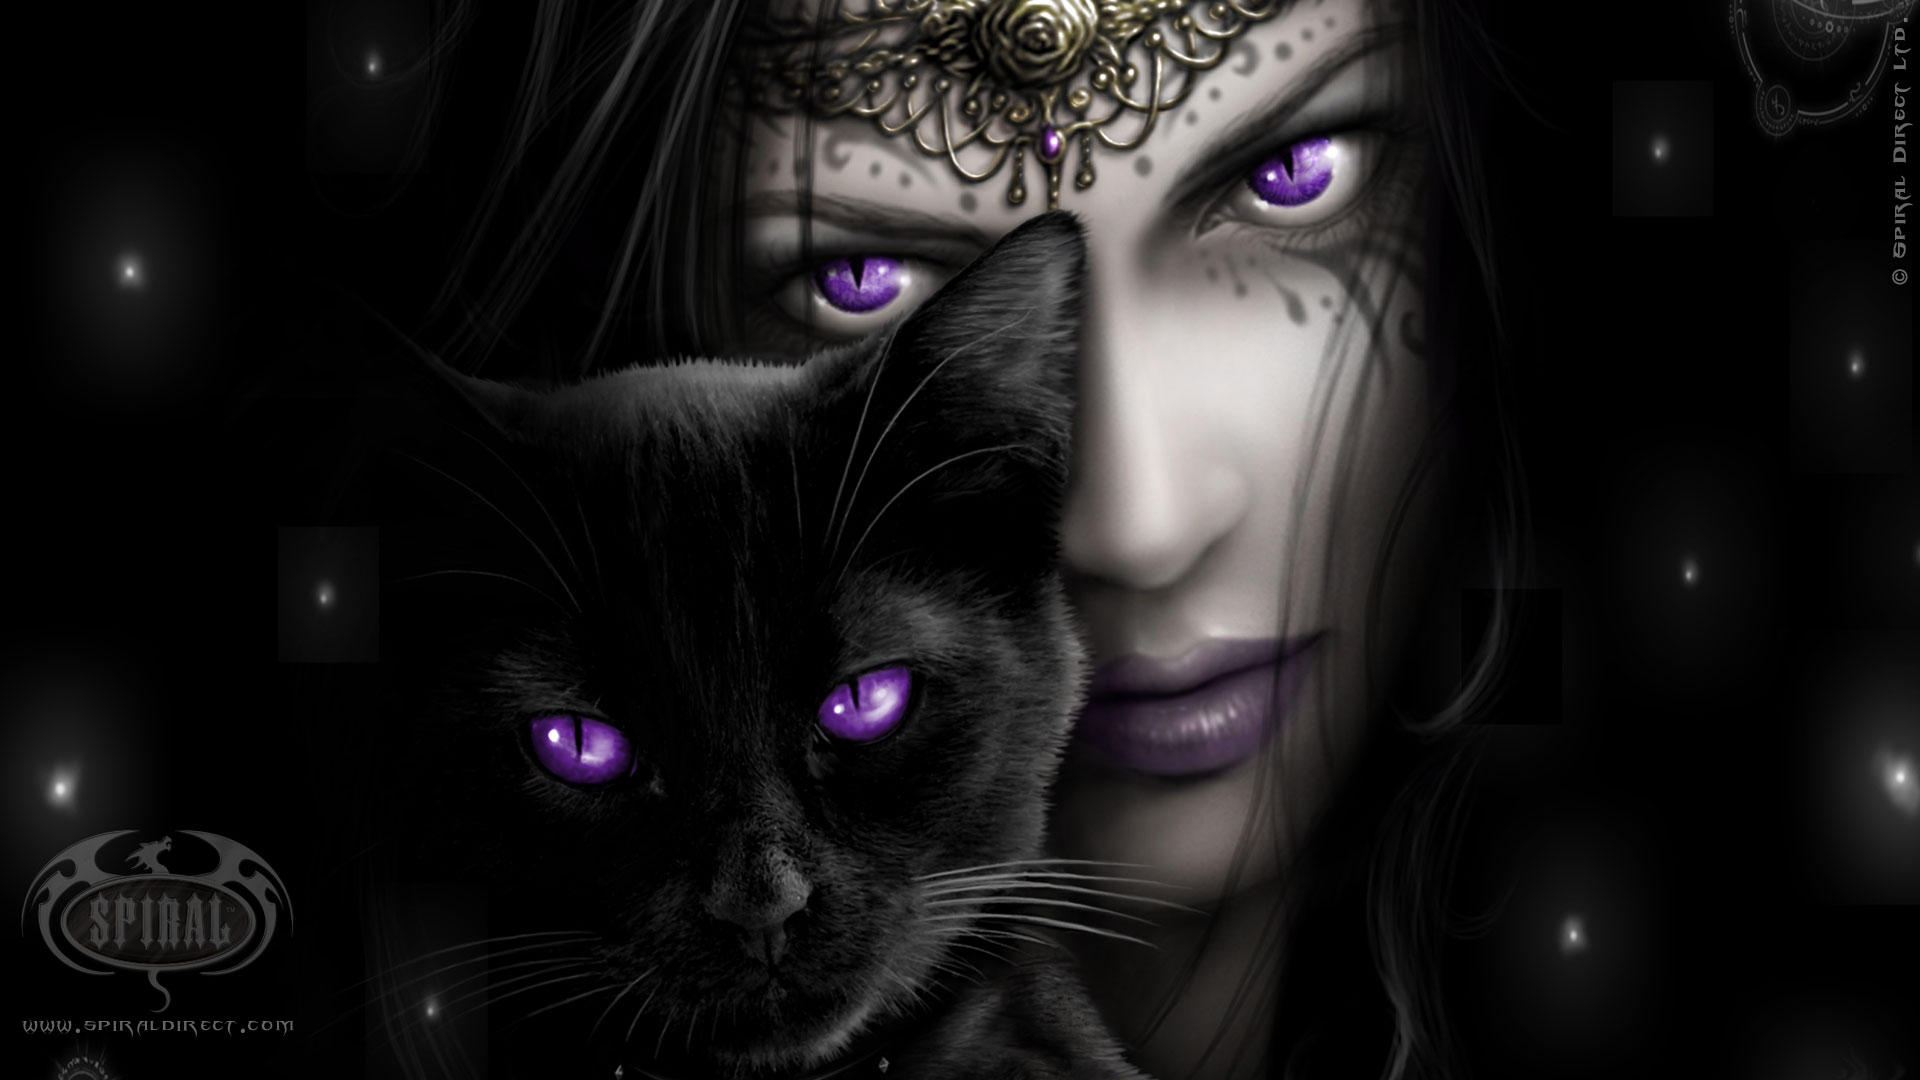 Donker - Gothic  Purple Eye Cat Witch Hd Woman Wallpaper